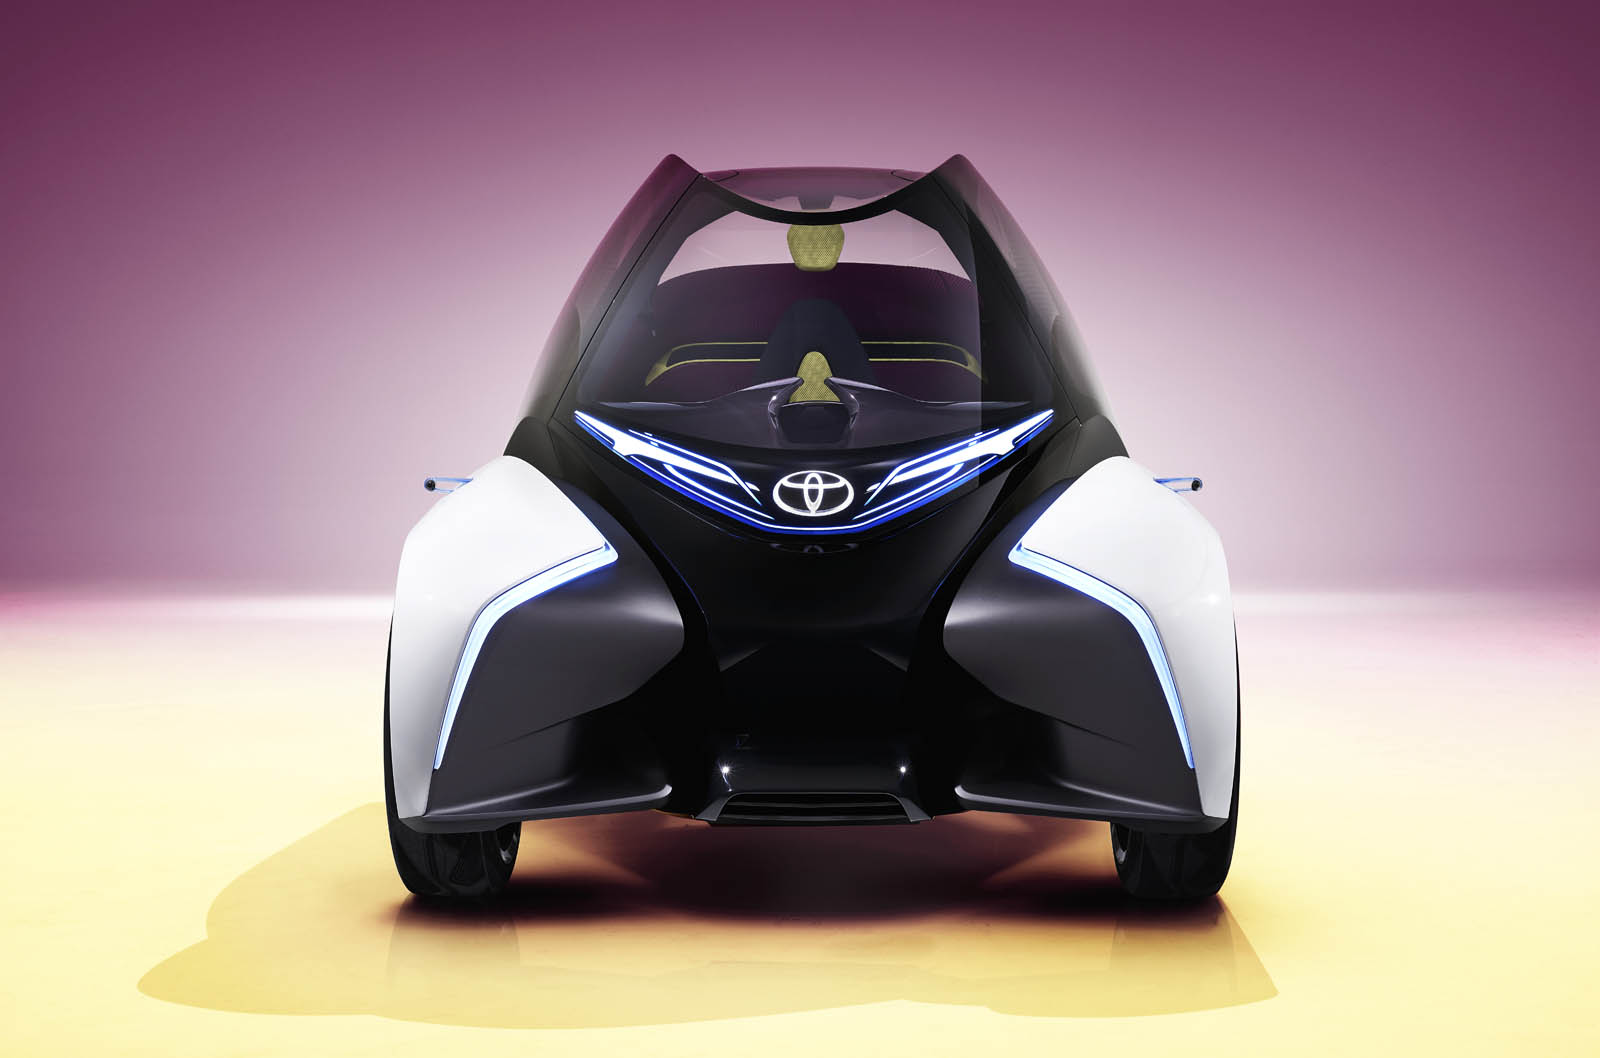 2017_Toyota_Concept_i-Tril_Static_12 copy